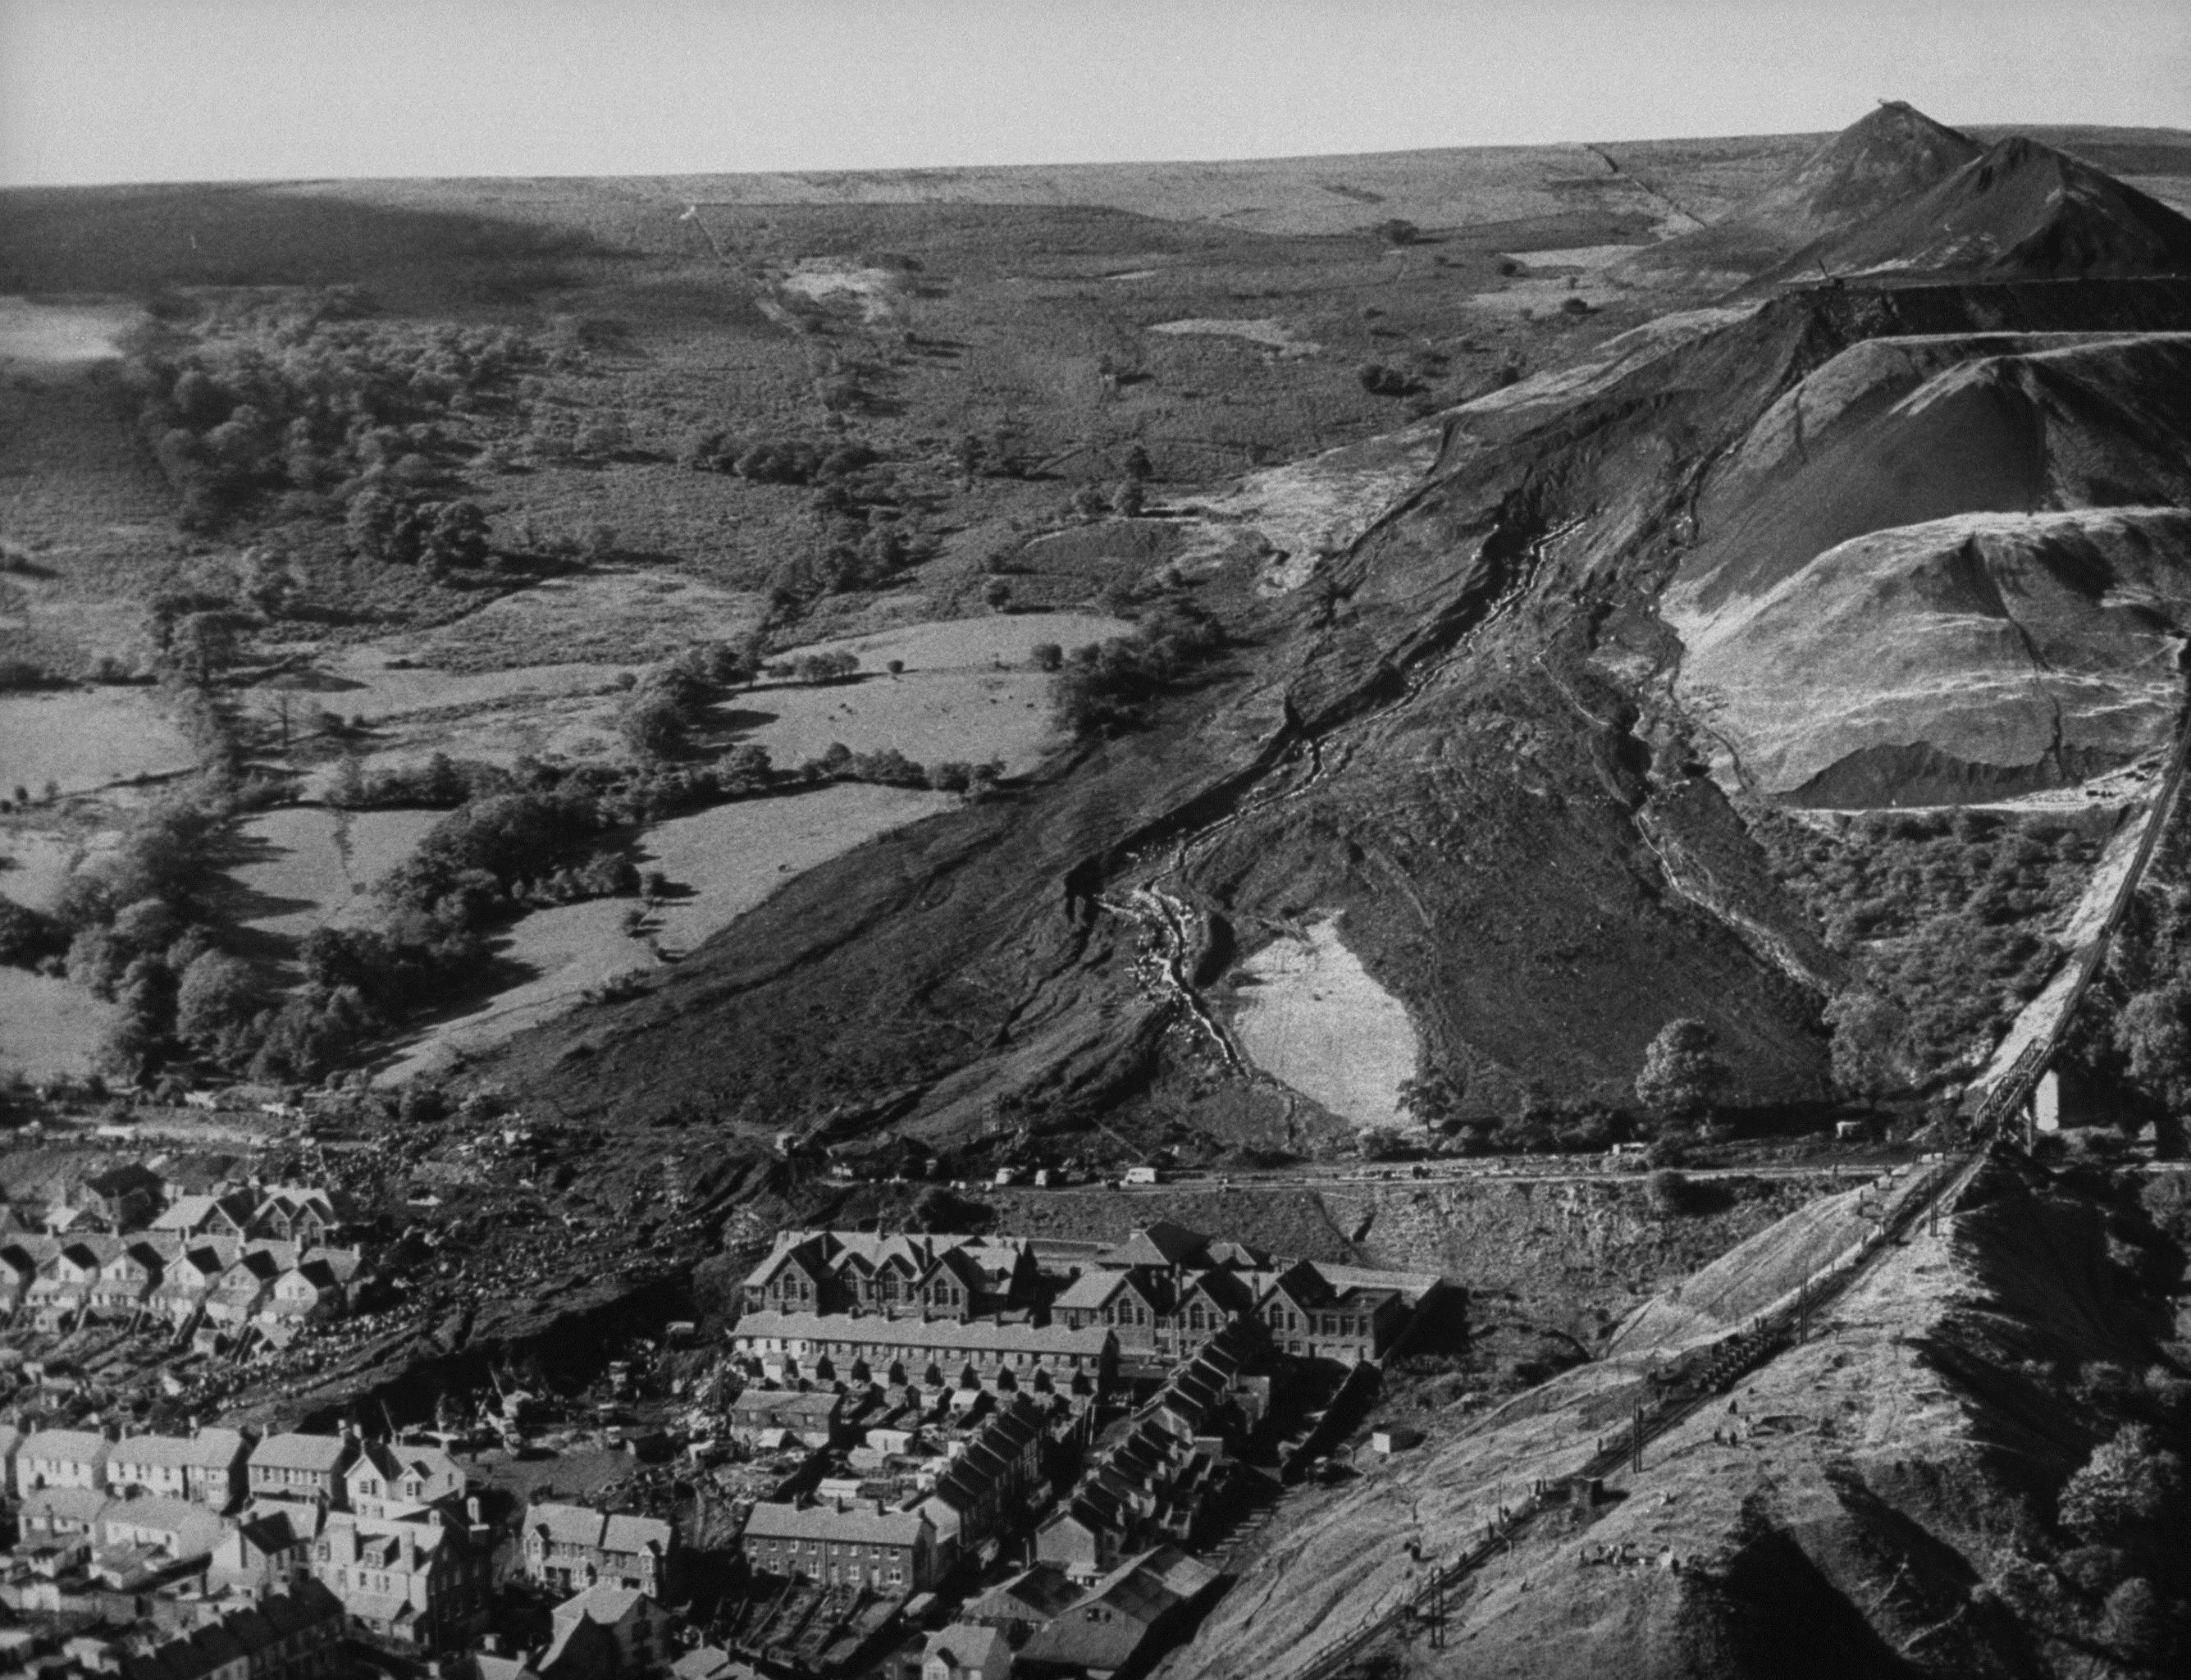 Aberfan: John Humphrys, Huw Edwards and a survivor recall ...